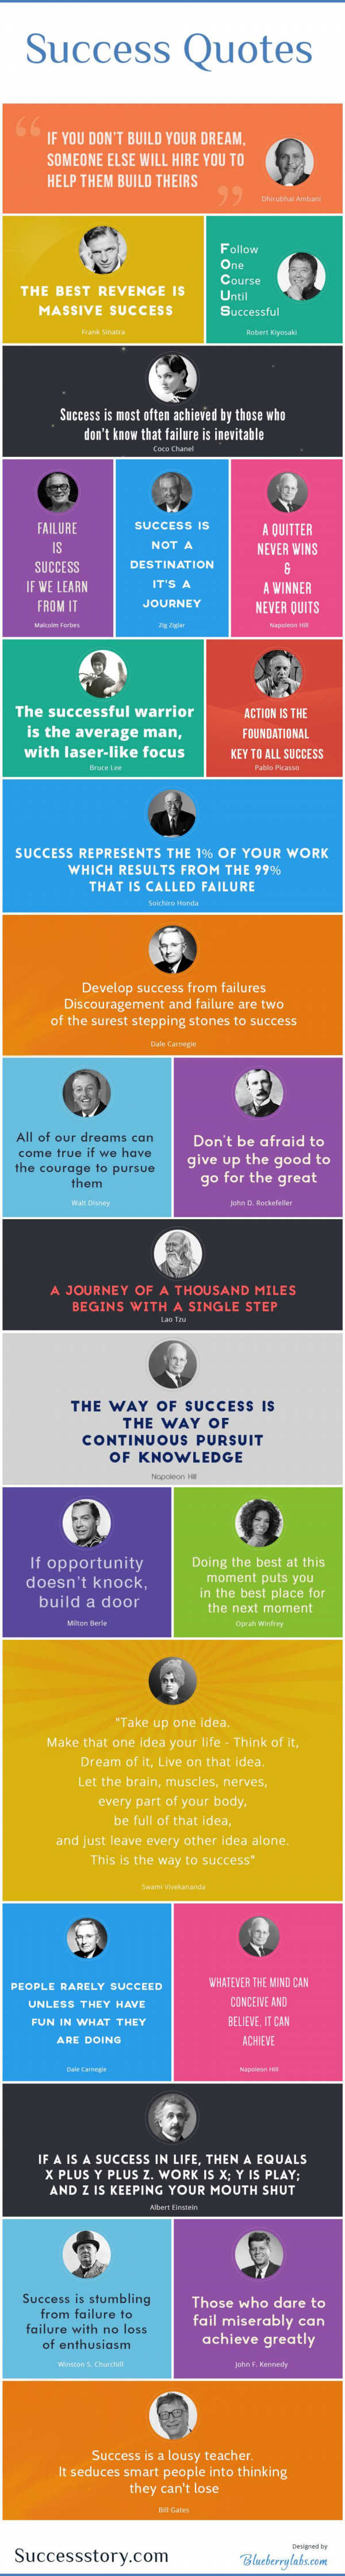 Success Quotes [Infographic]